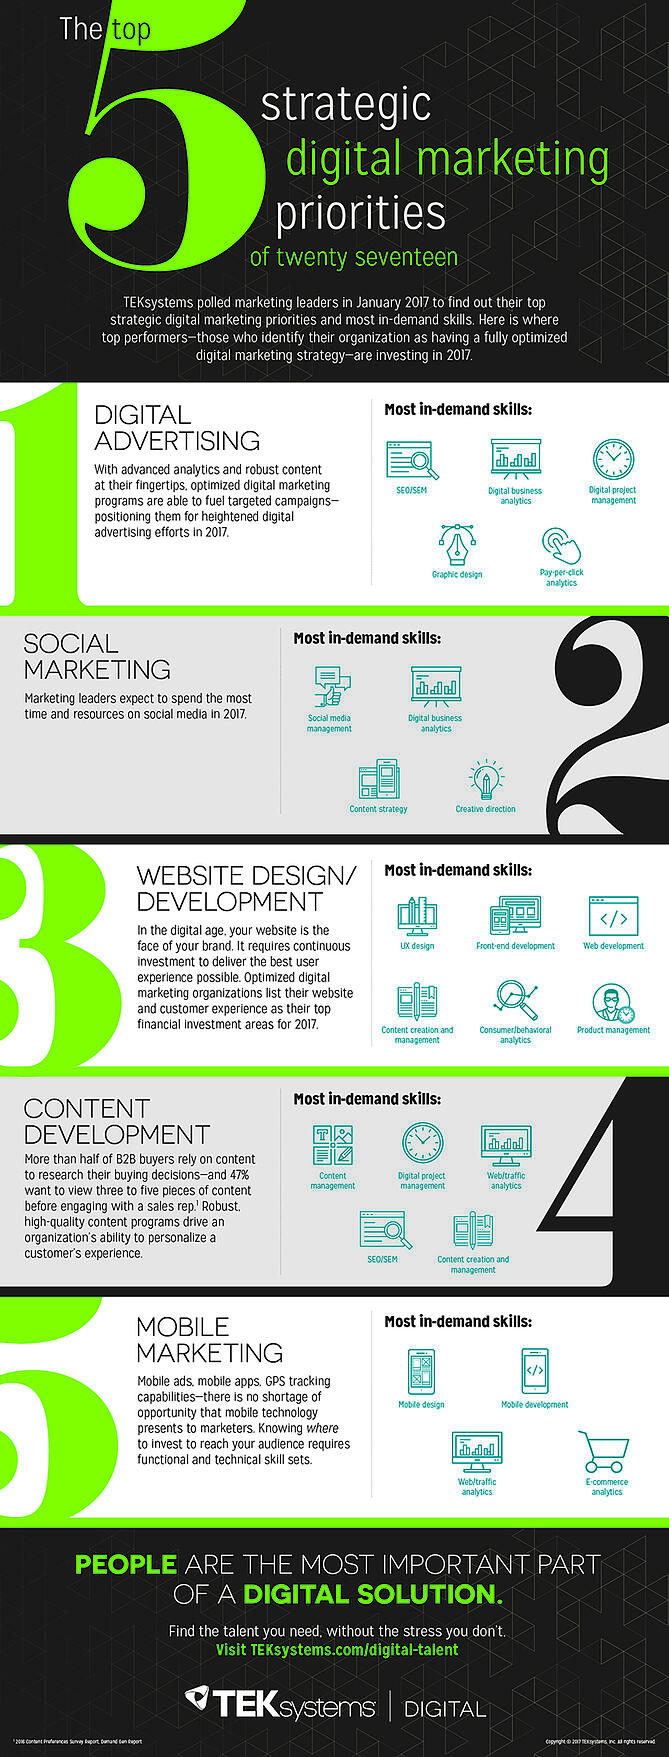 2017-digital-marketing-trends-infographic-850x2233.jpg